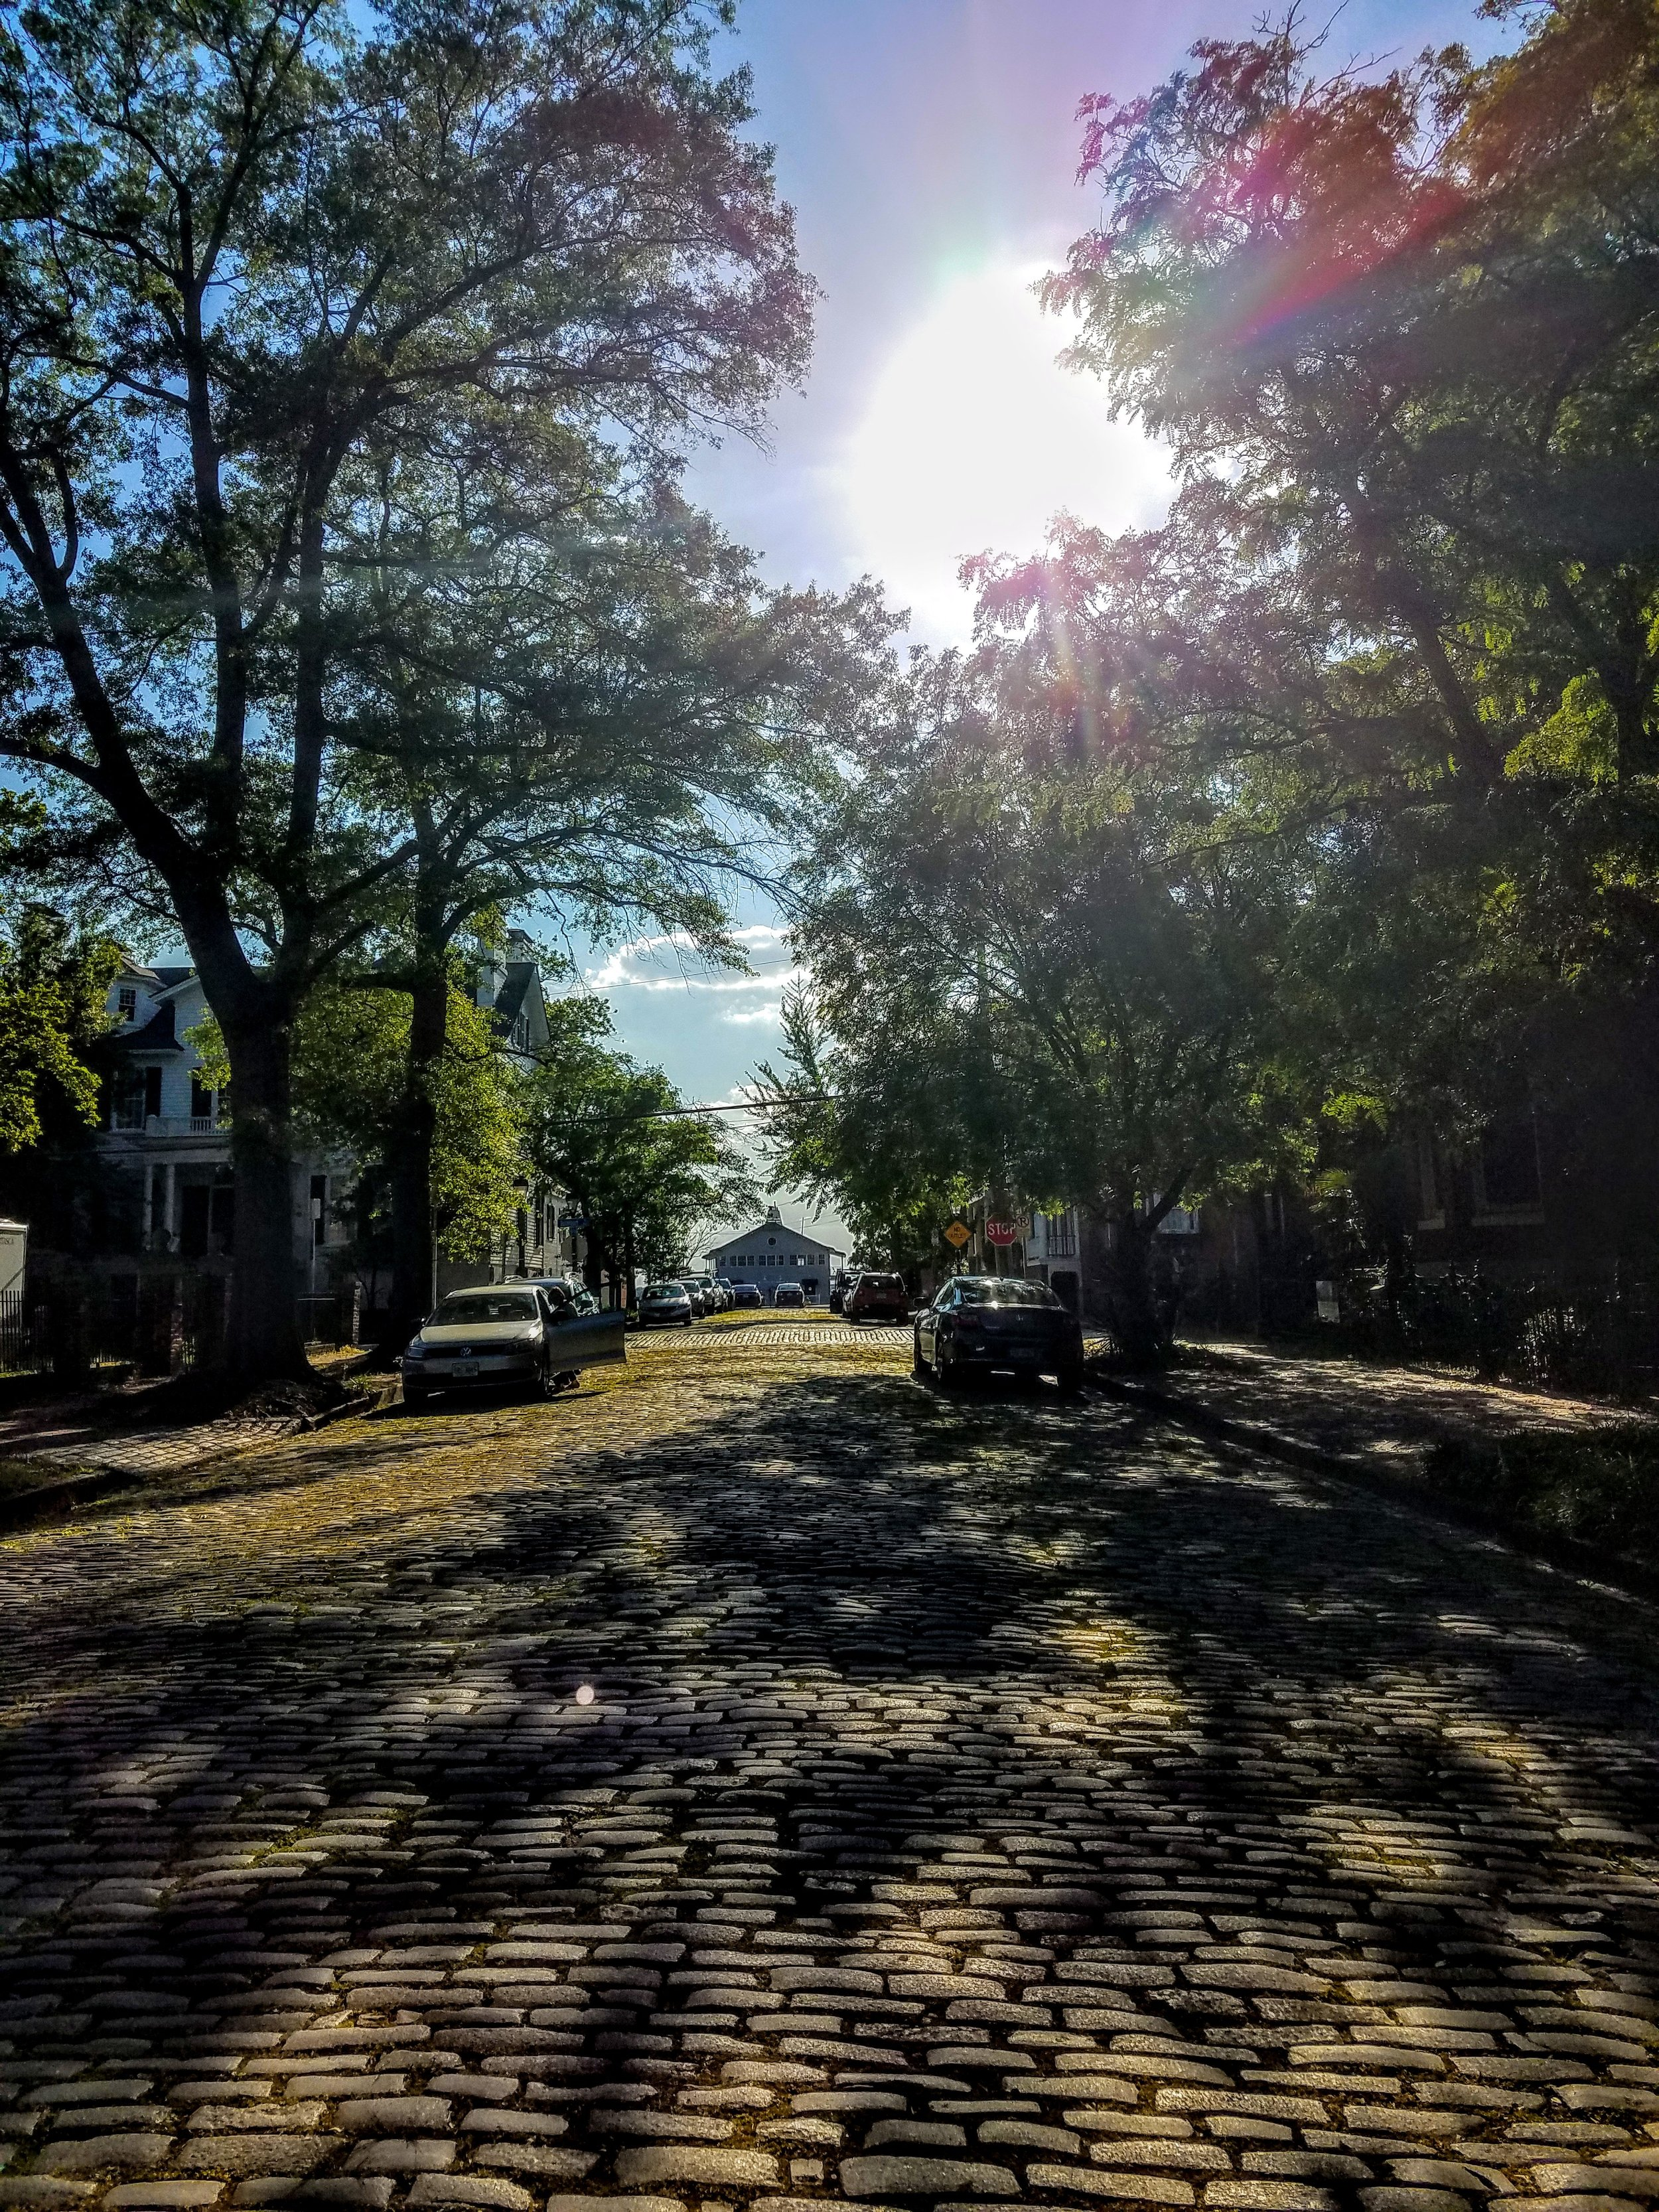 Freemason Street. The cities oldest surviving cobblestone street dating back to the early 18th century. Like Savannah they used the stones that were originally used as ballast in ships.